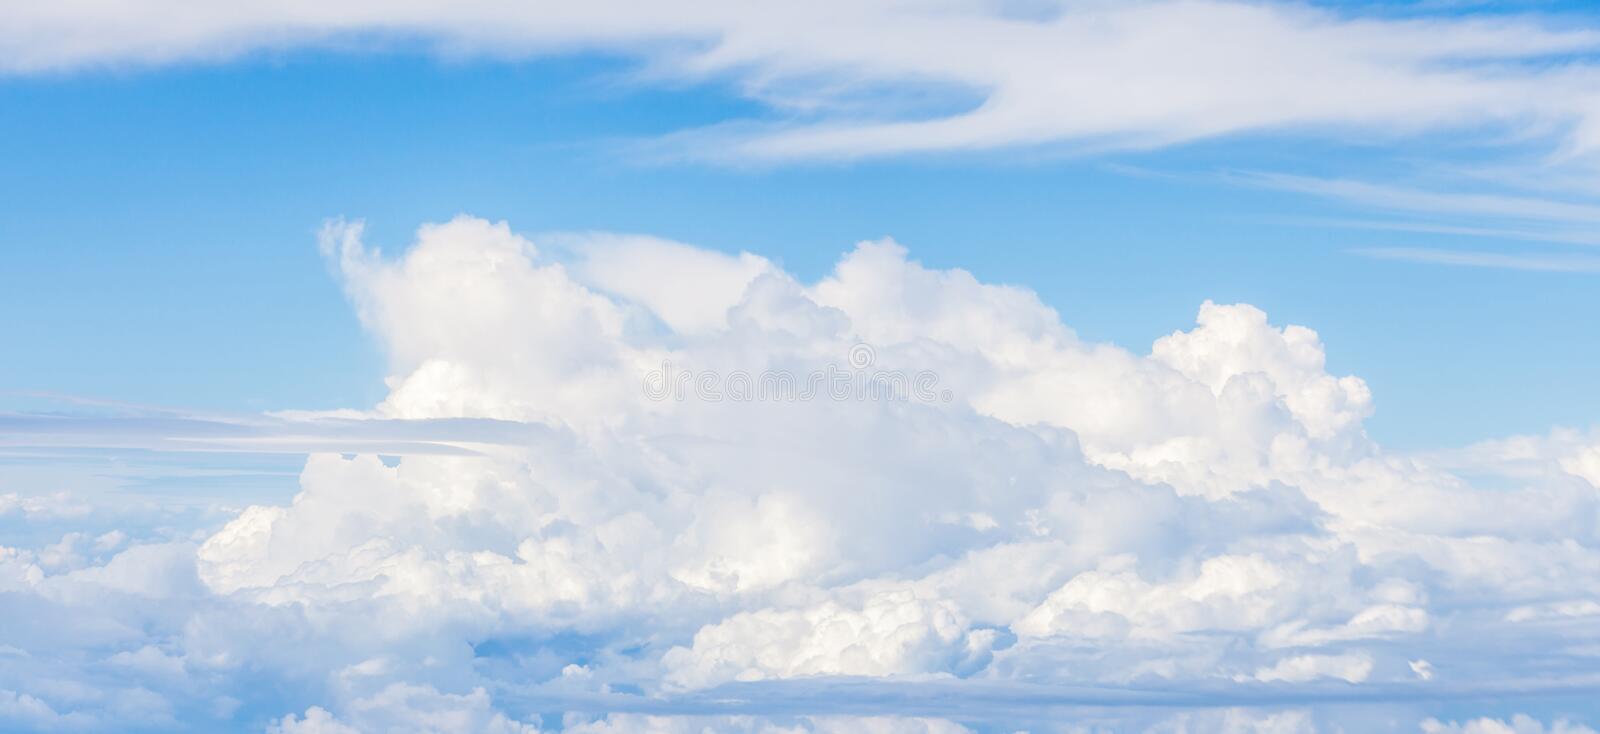 Close-up big fluffy clouds in light blue sky, beautiful cloudscape. royalty free stock images